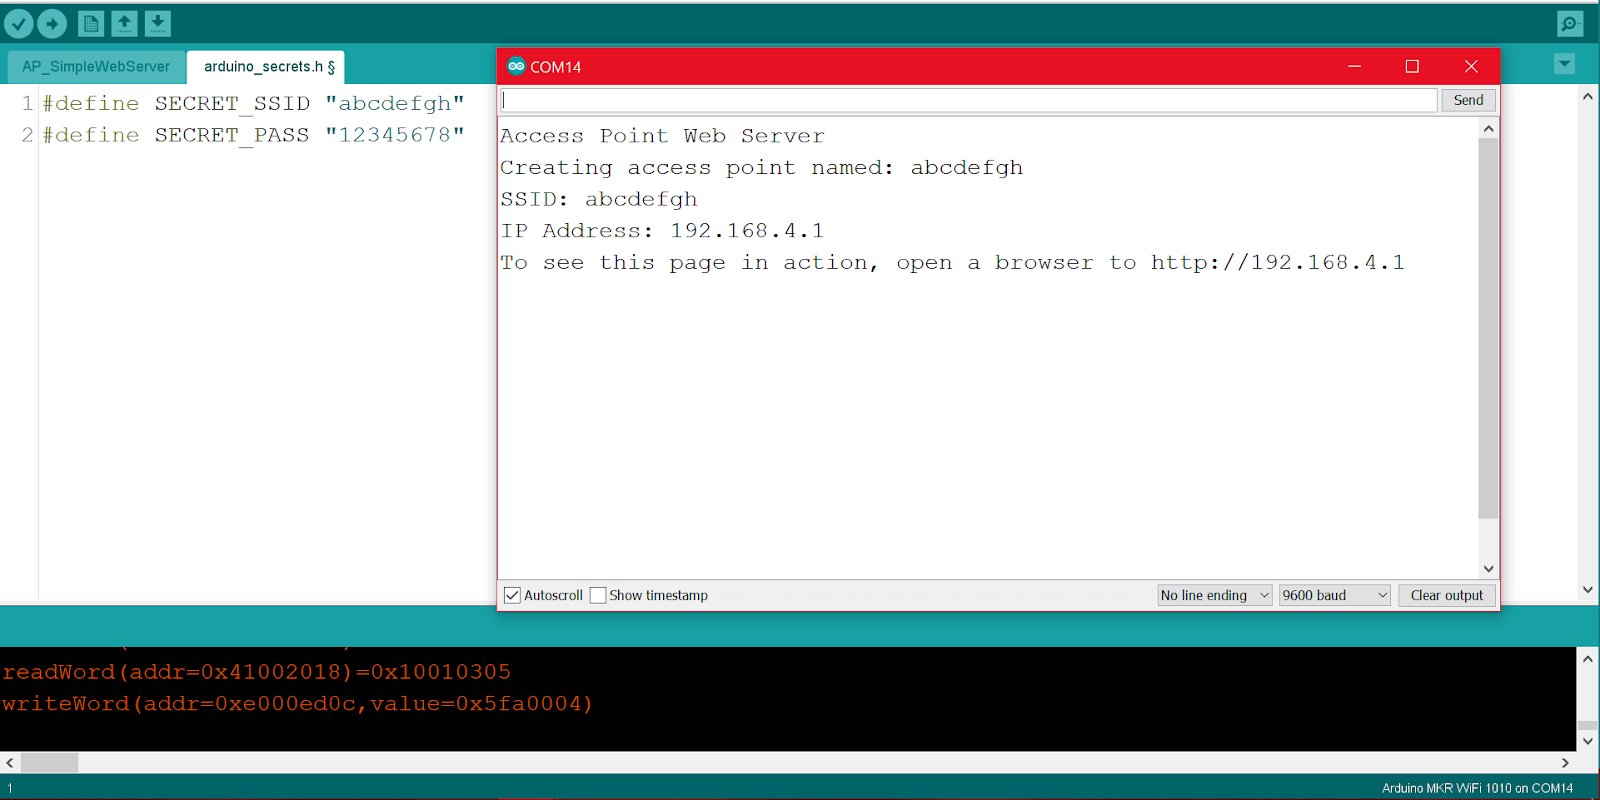 Serial monitor message